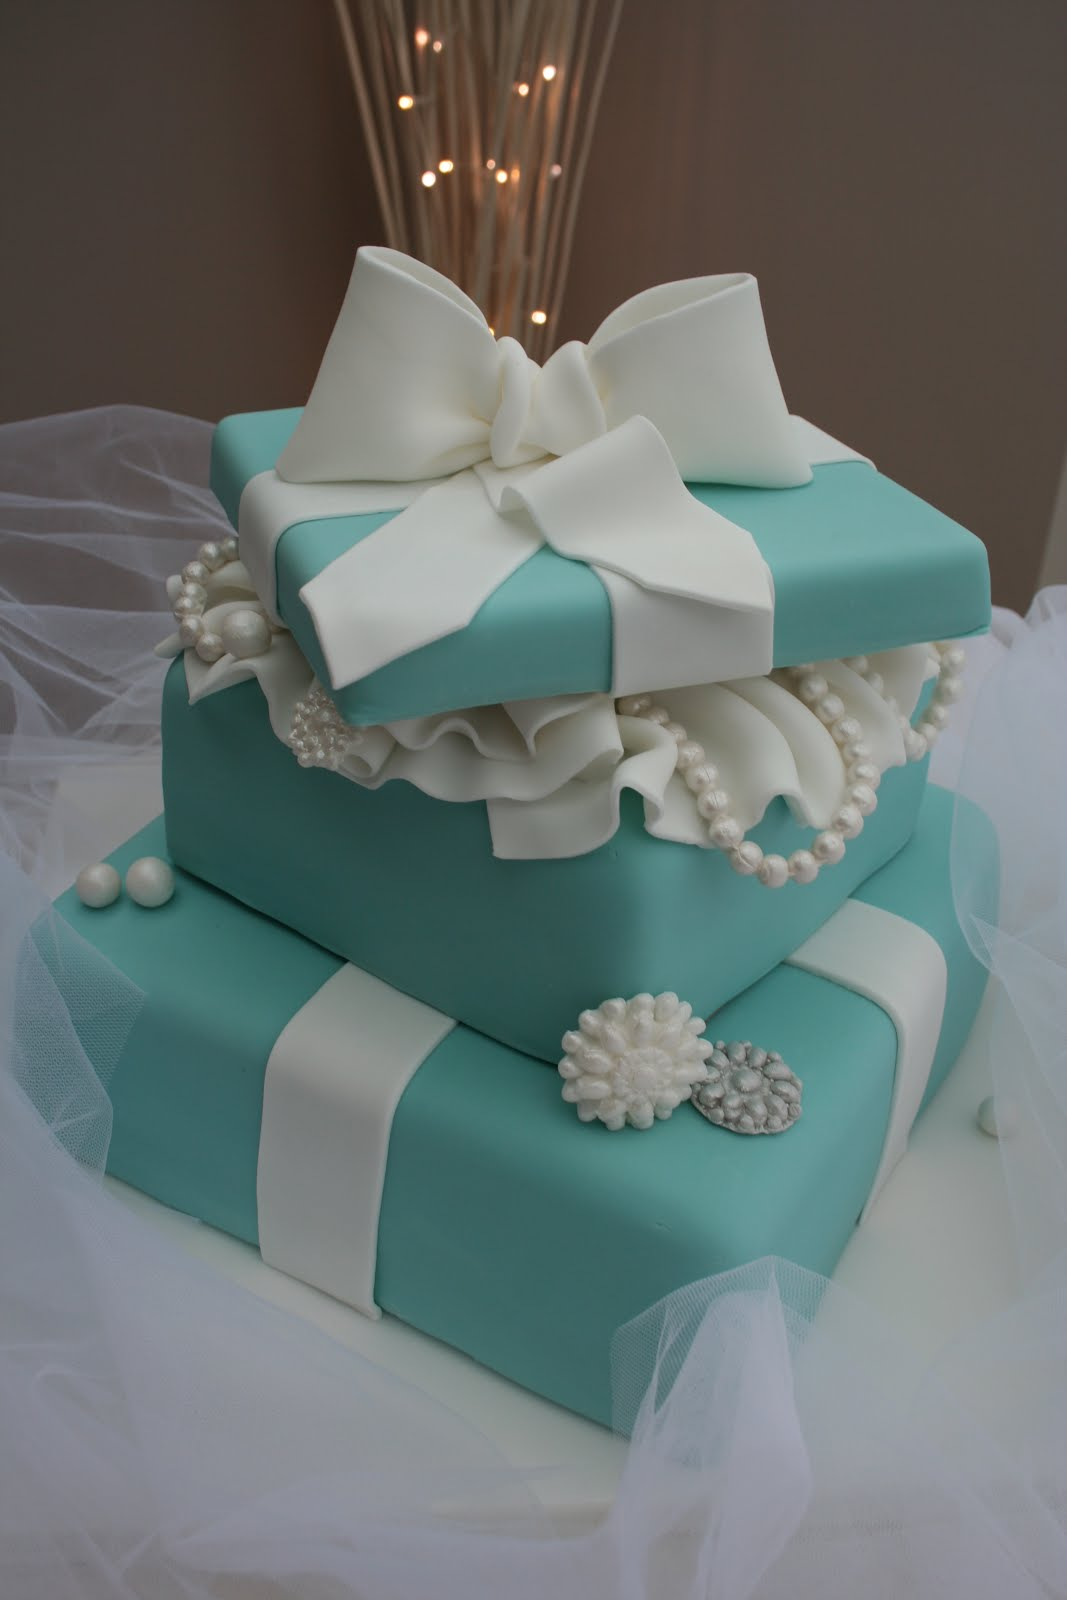 Tiffany Blue Cake Design : Katies Cupcakes: 2 Tiered Tiffany cake